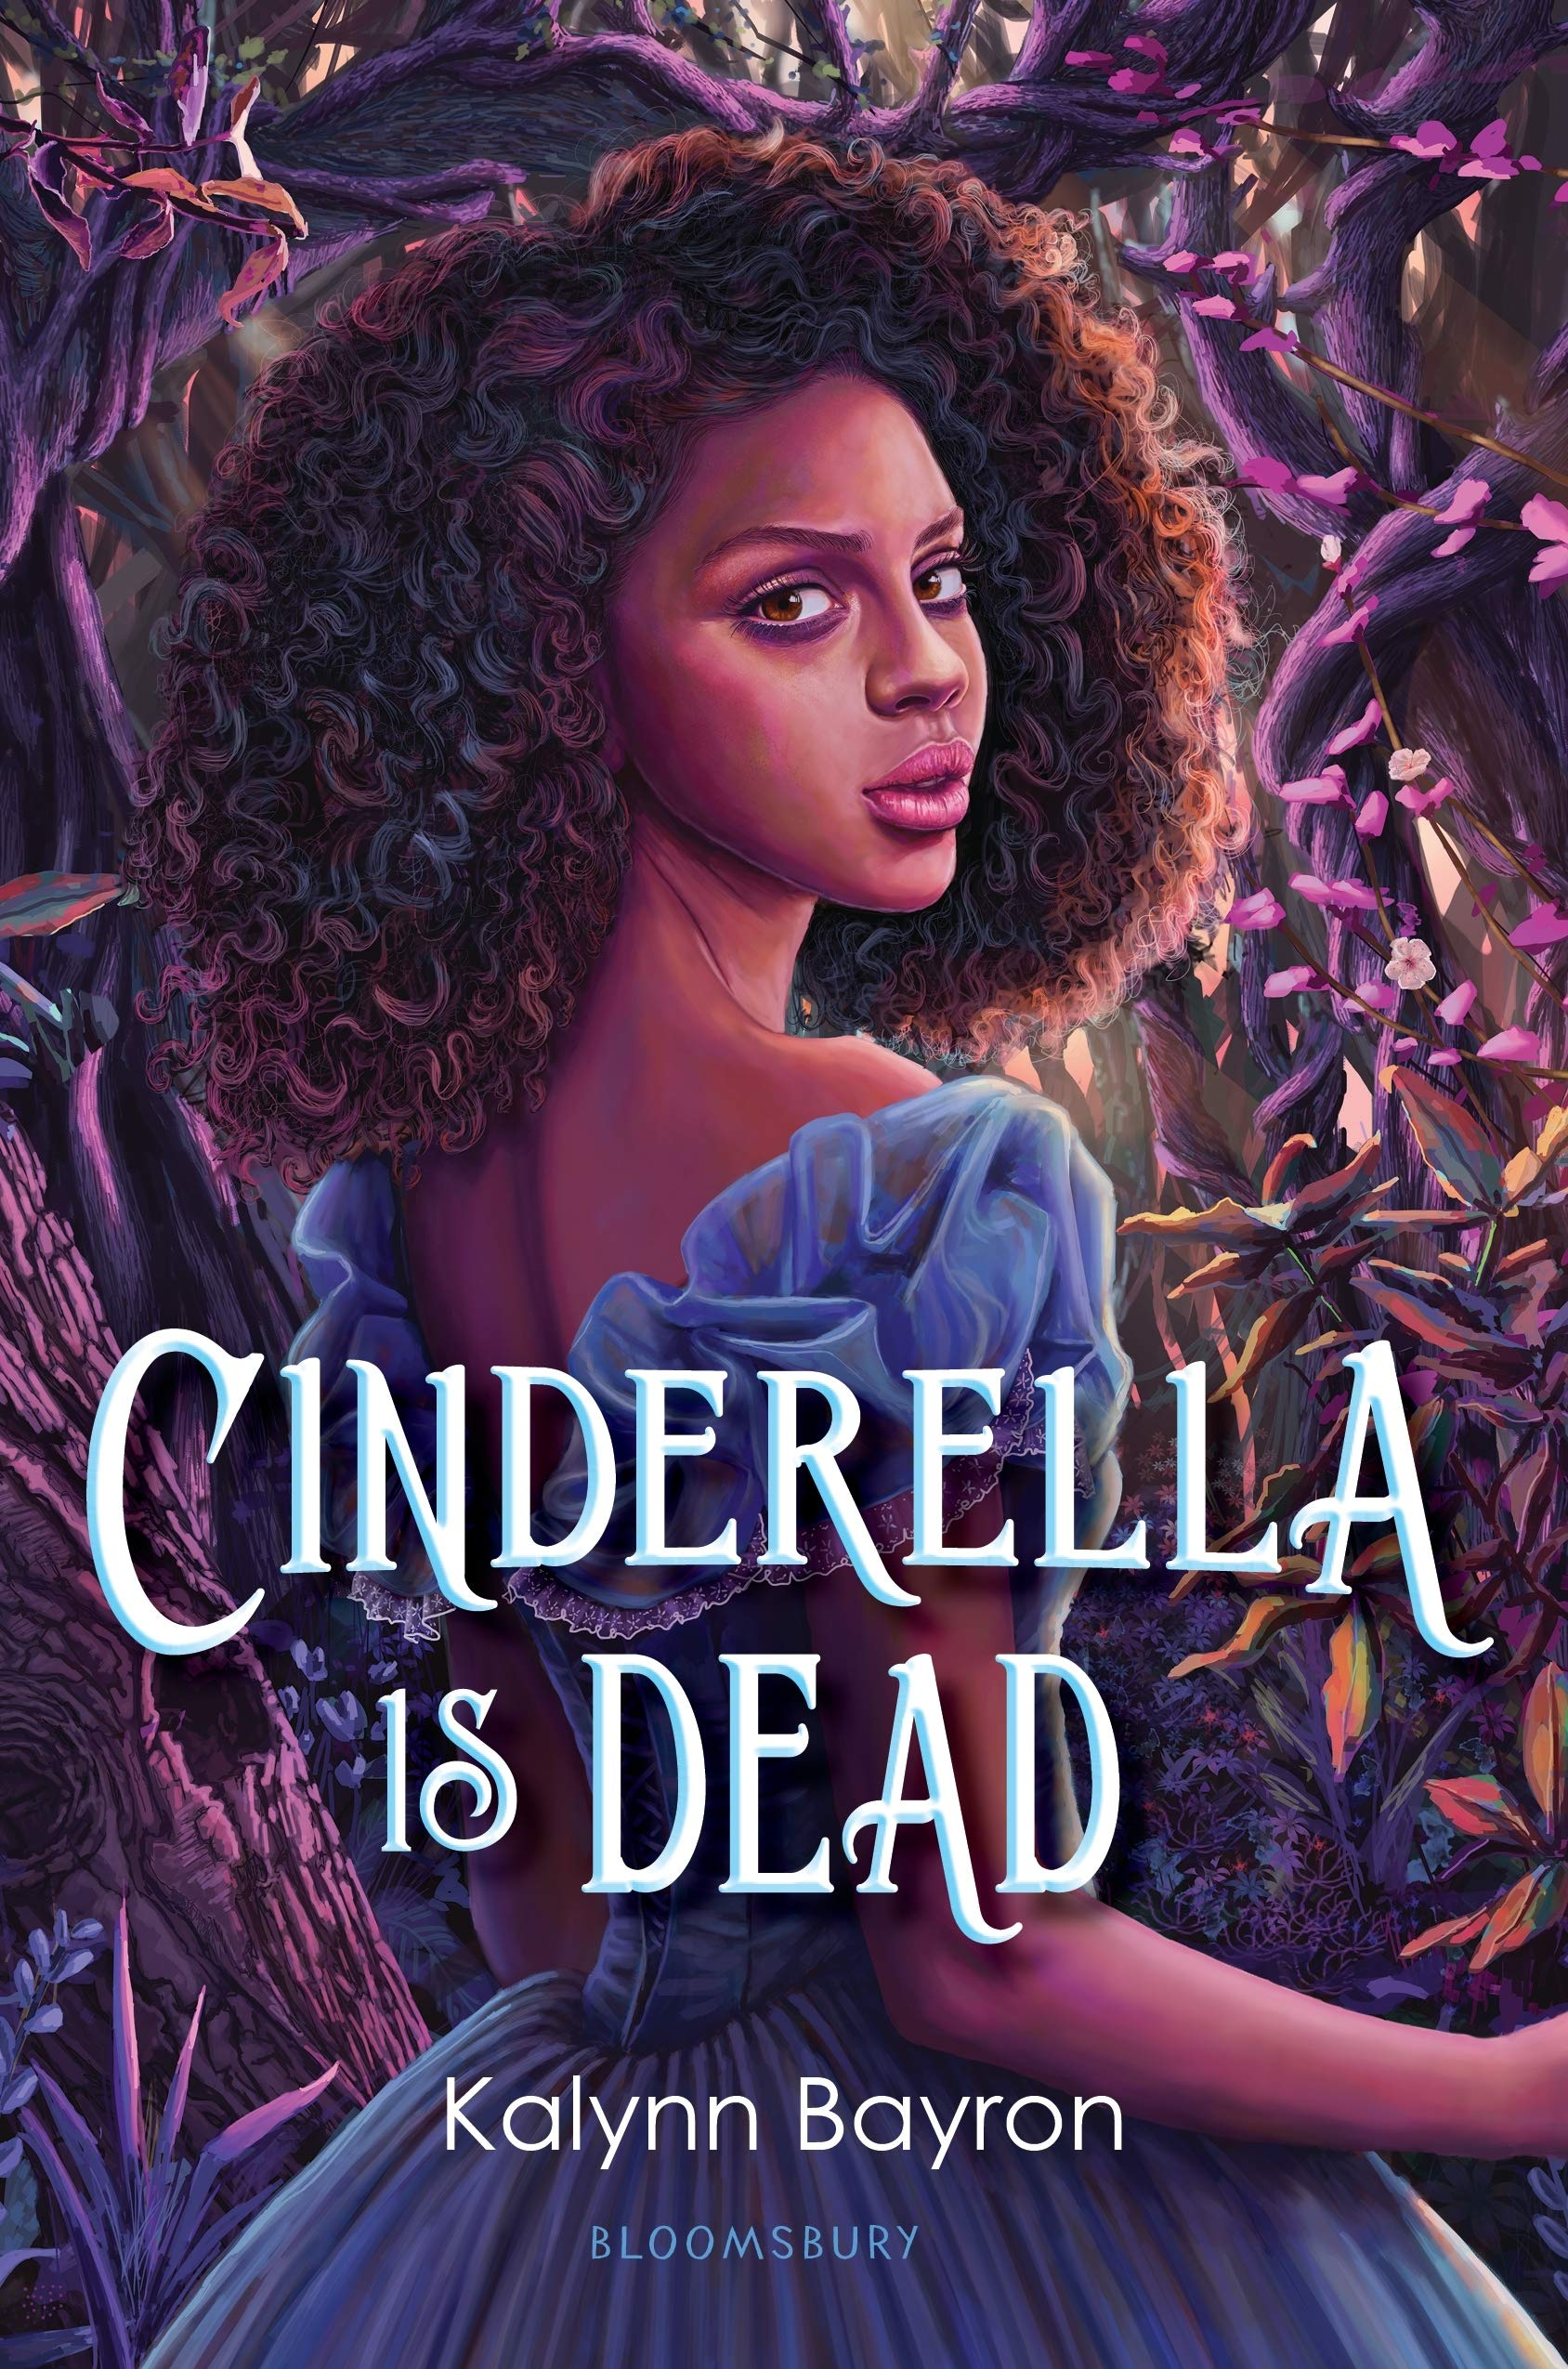 Amazon.com: Cinderella Is Dead (9781547603879): Bayron, Kalynn: Books